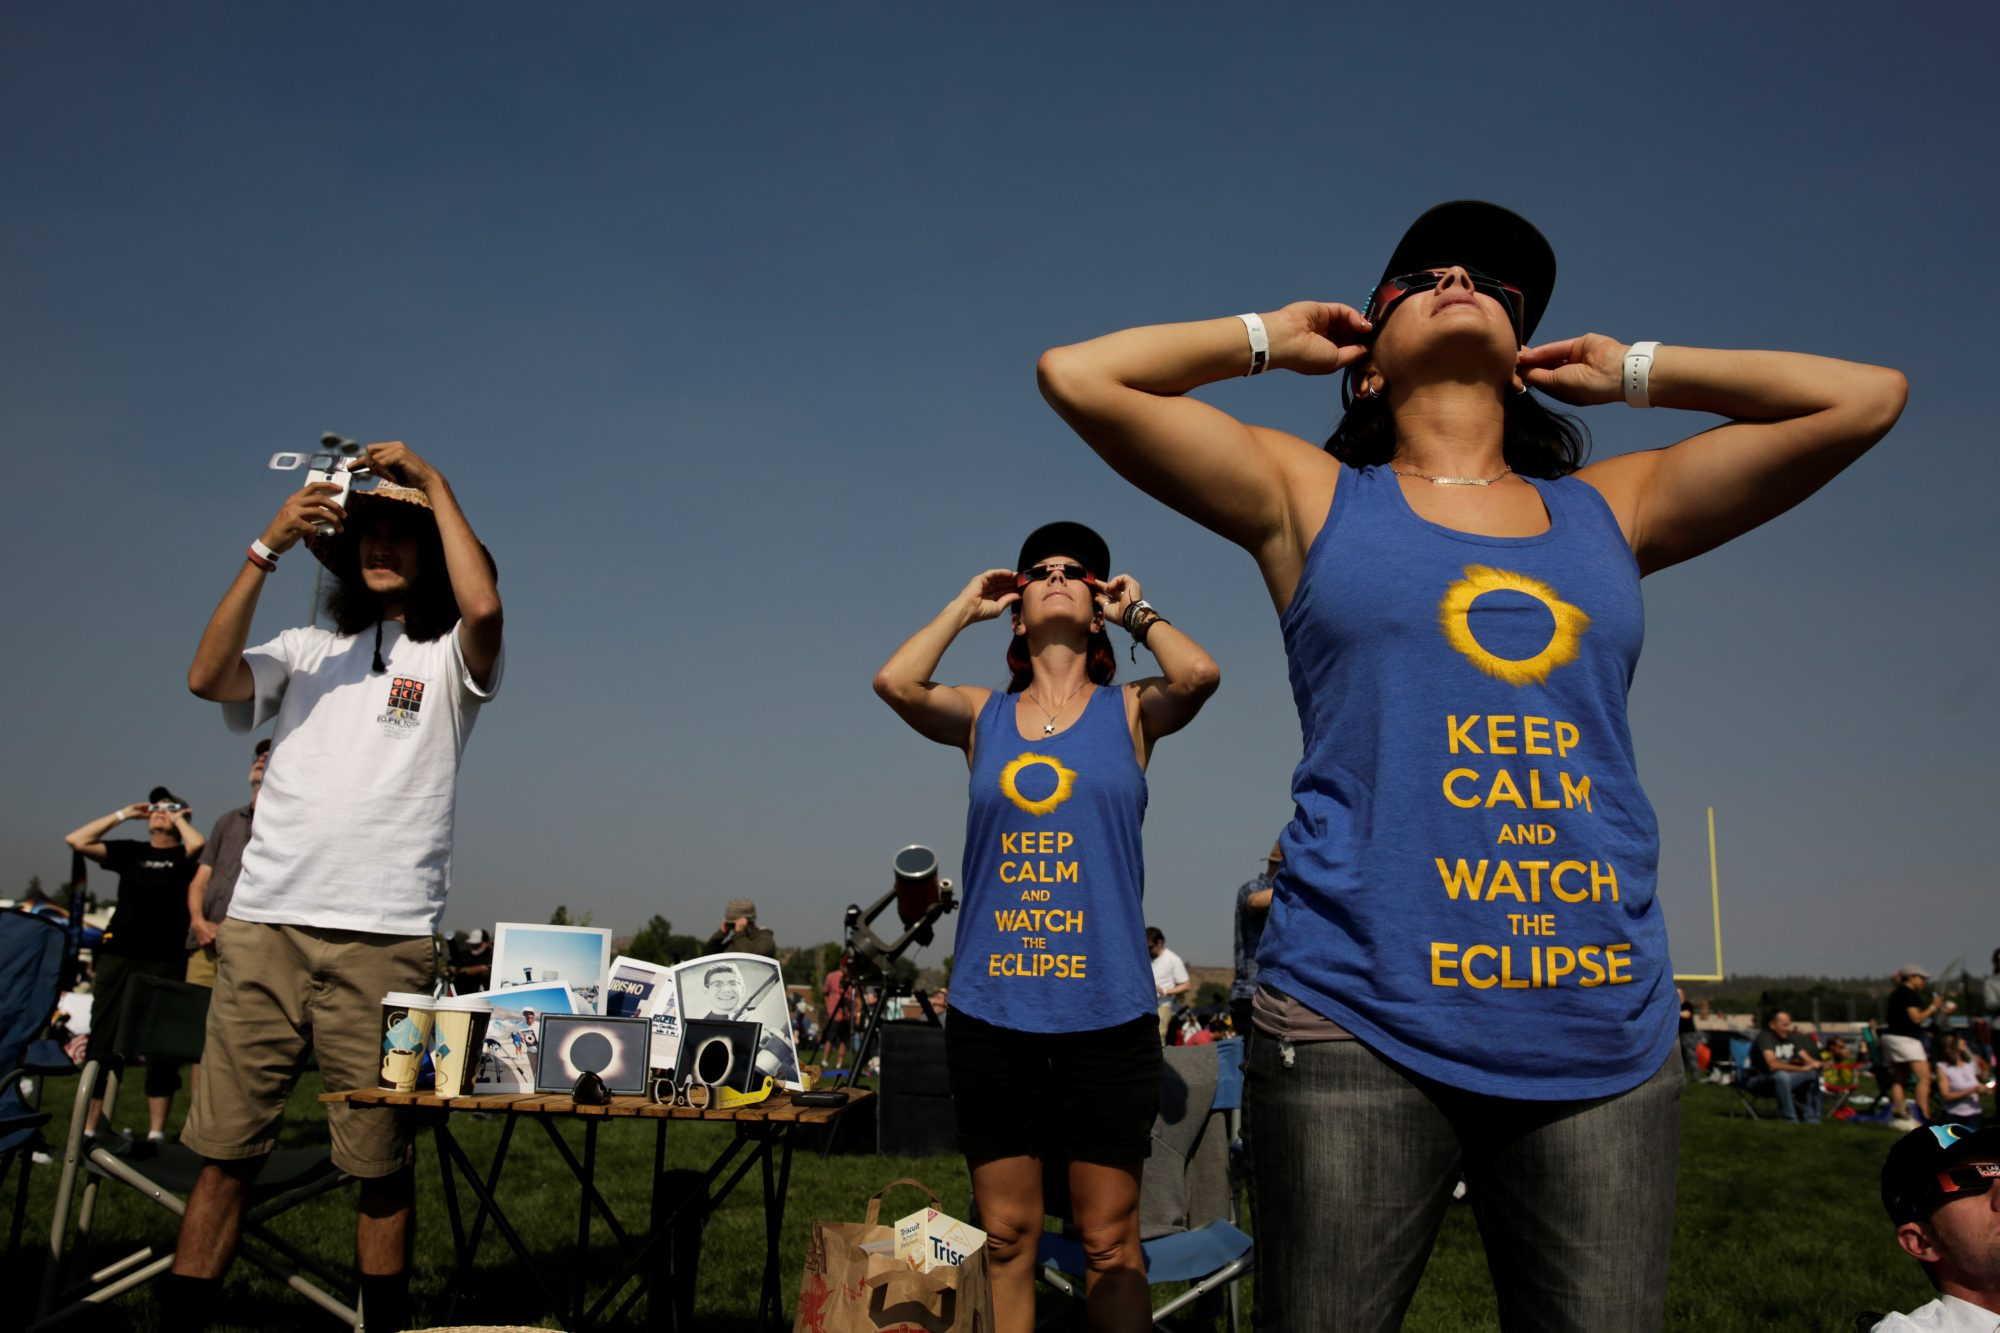 People watch the solar eclipse during the Lowell Observatory Solar Eclipse Experience at Madras High School in Madras, Oregon. Photo by Jason Redmond/Reuters